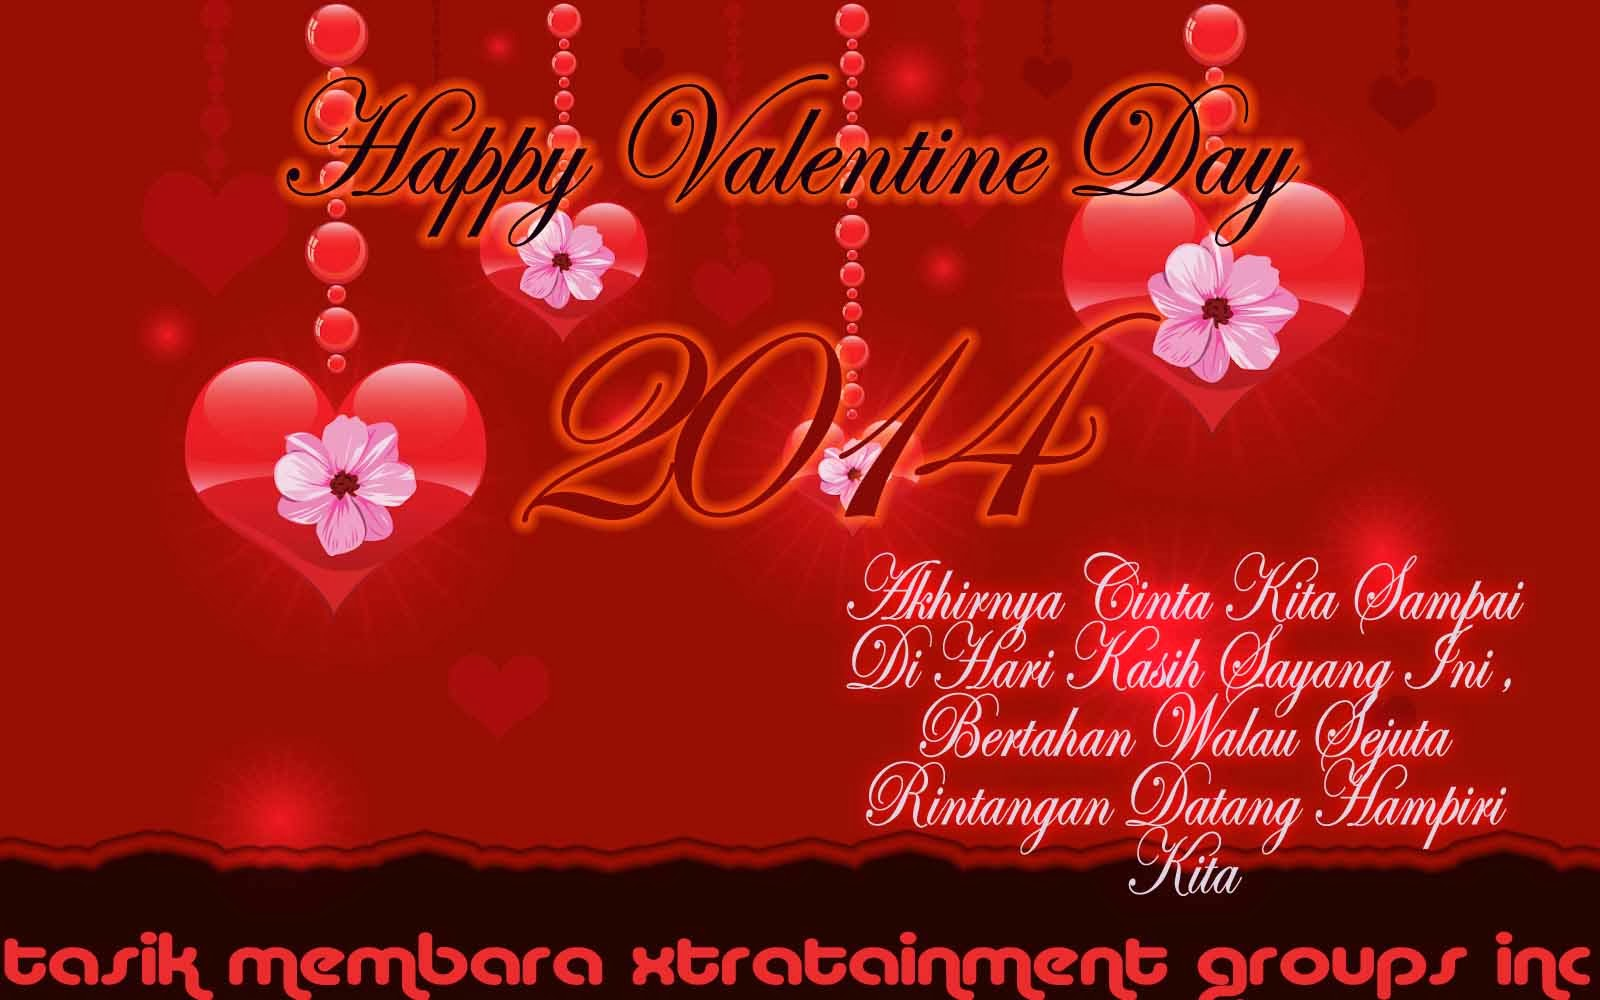 Kartu Ucapan Happy Valentine Days 2015 Romance